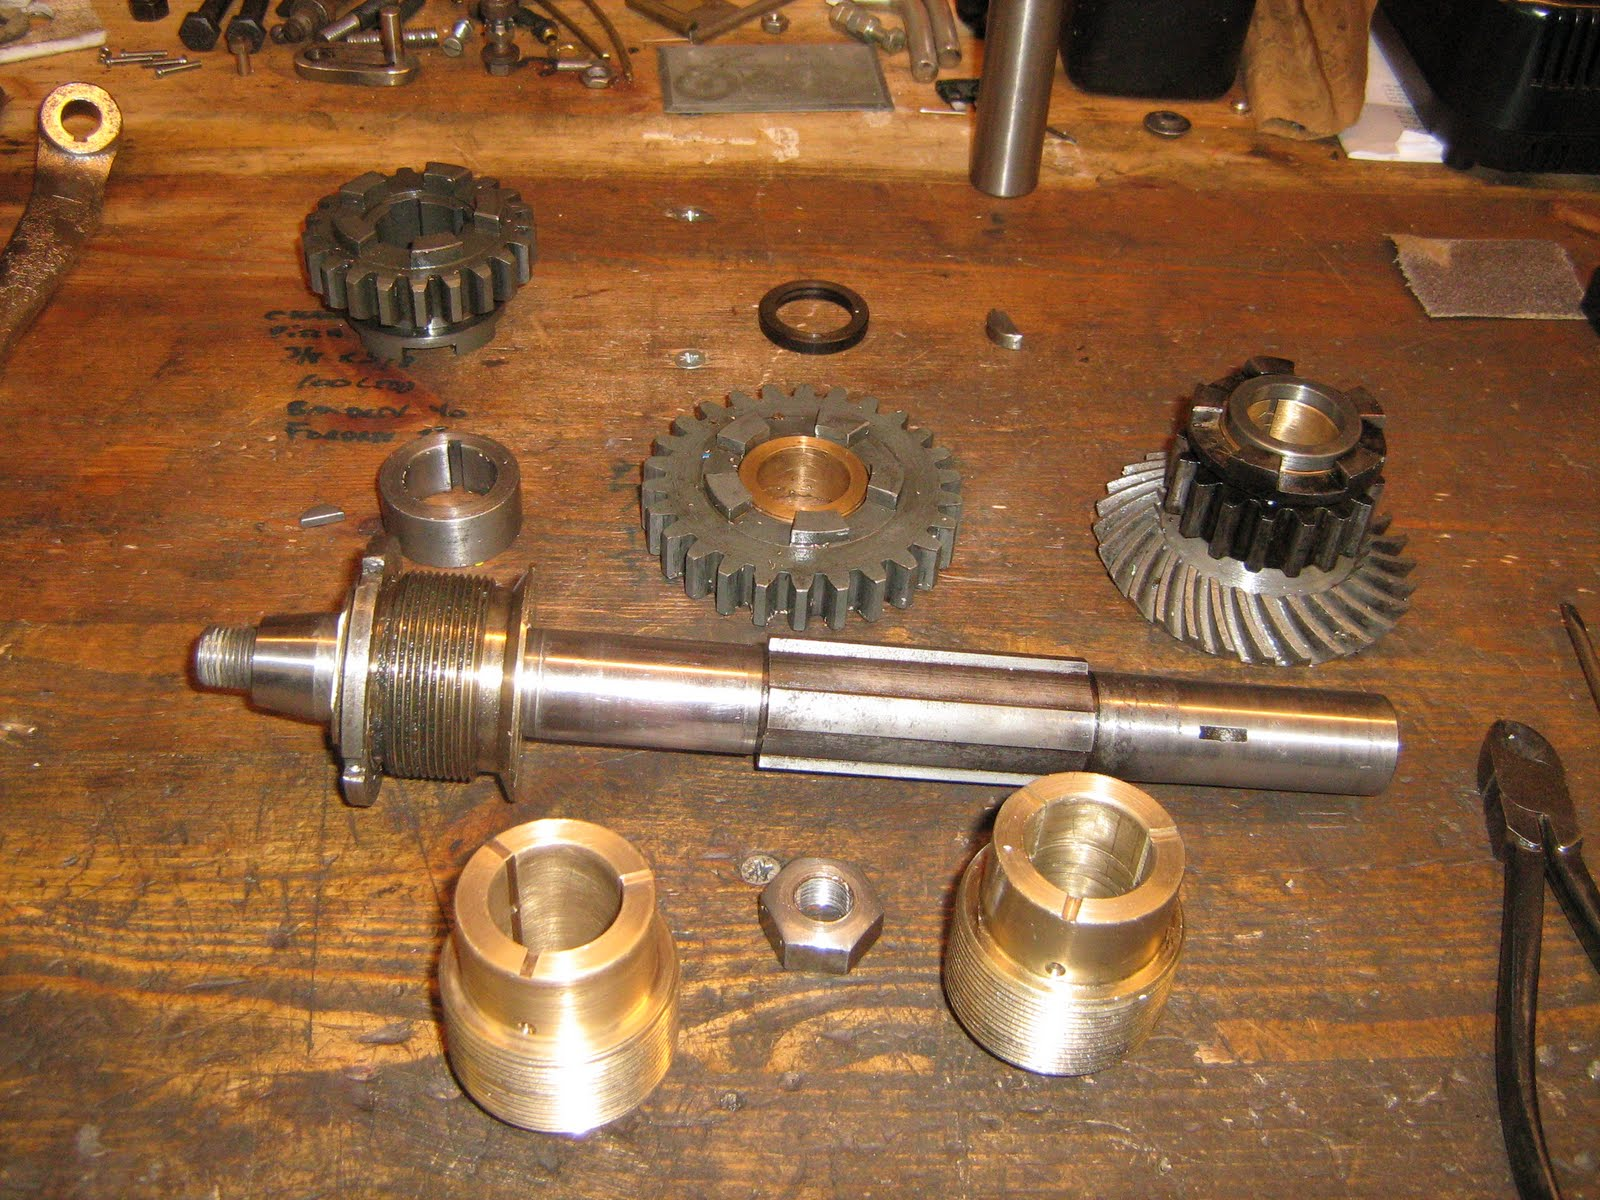 American Motorcycles Norway Henderson De Luxe Gear Box Of Motorcycle Gearbox Output Shaft With Bewel And The Fued Bushing Next To New One